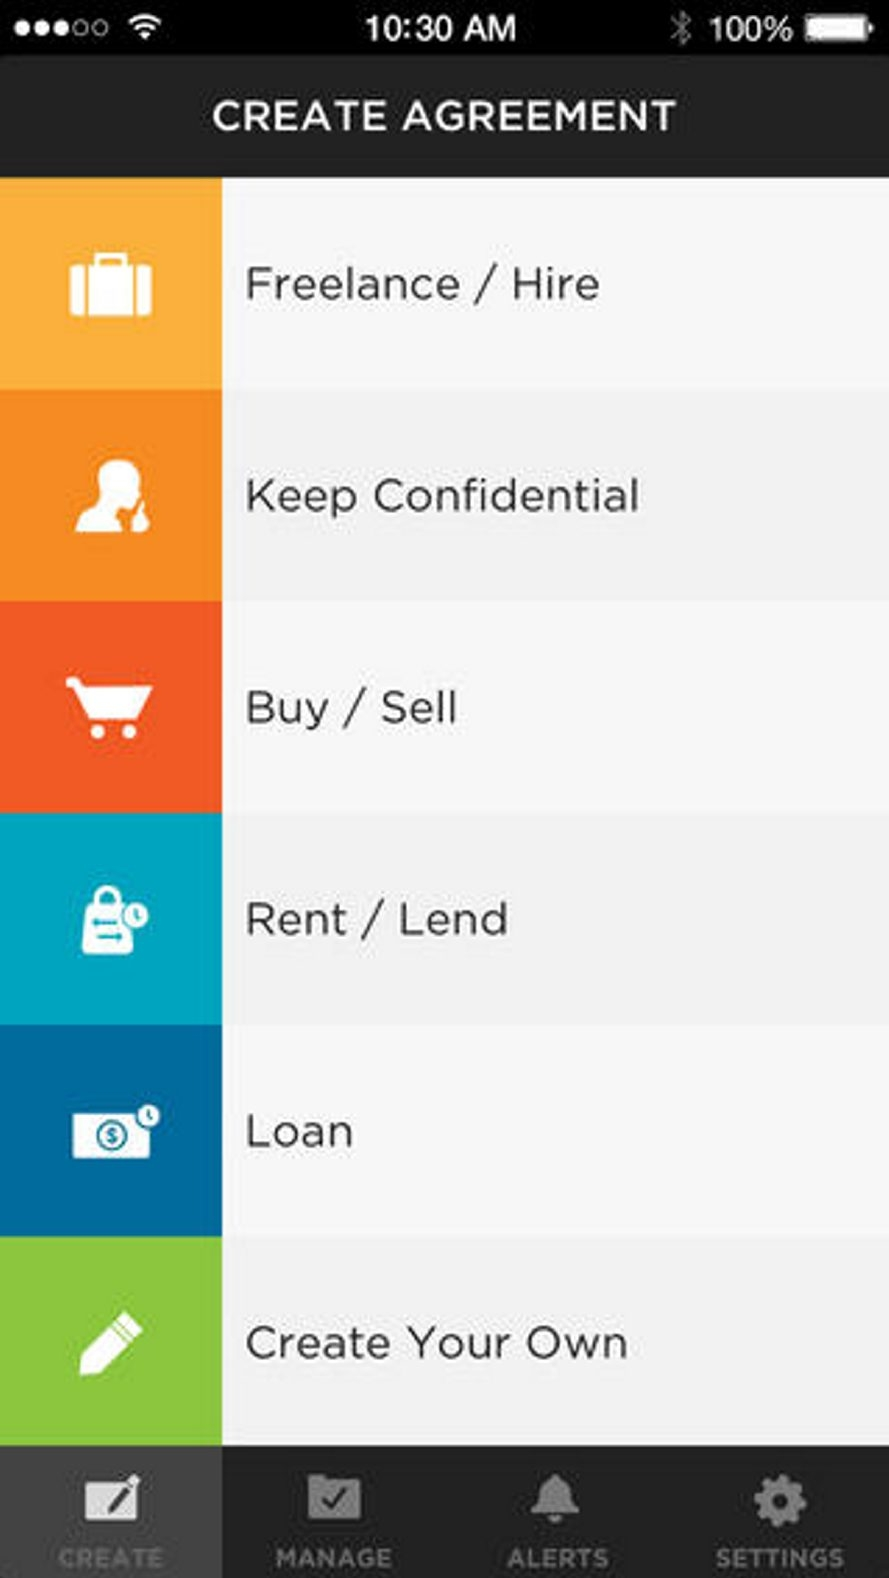 The Shake app launched in September with options to create six kinds of contracts, including freelancing, renting, lending money and a write-it-yourself feature.